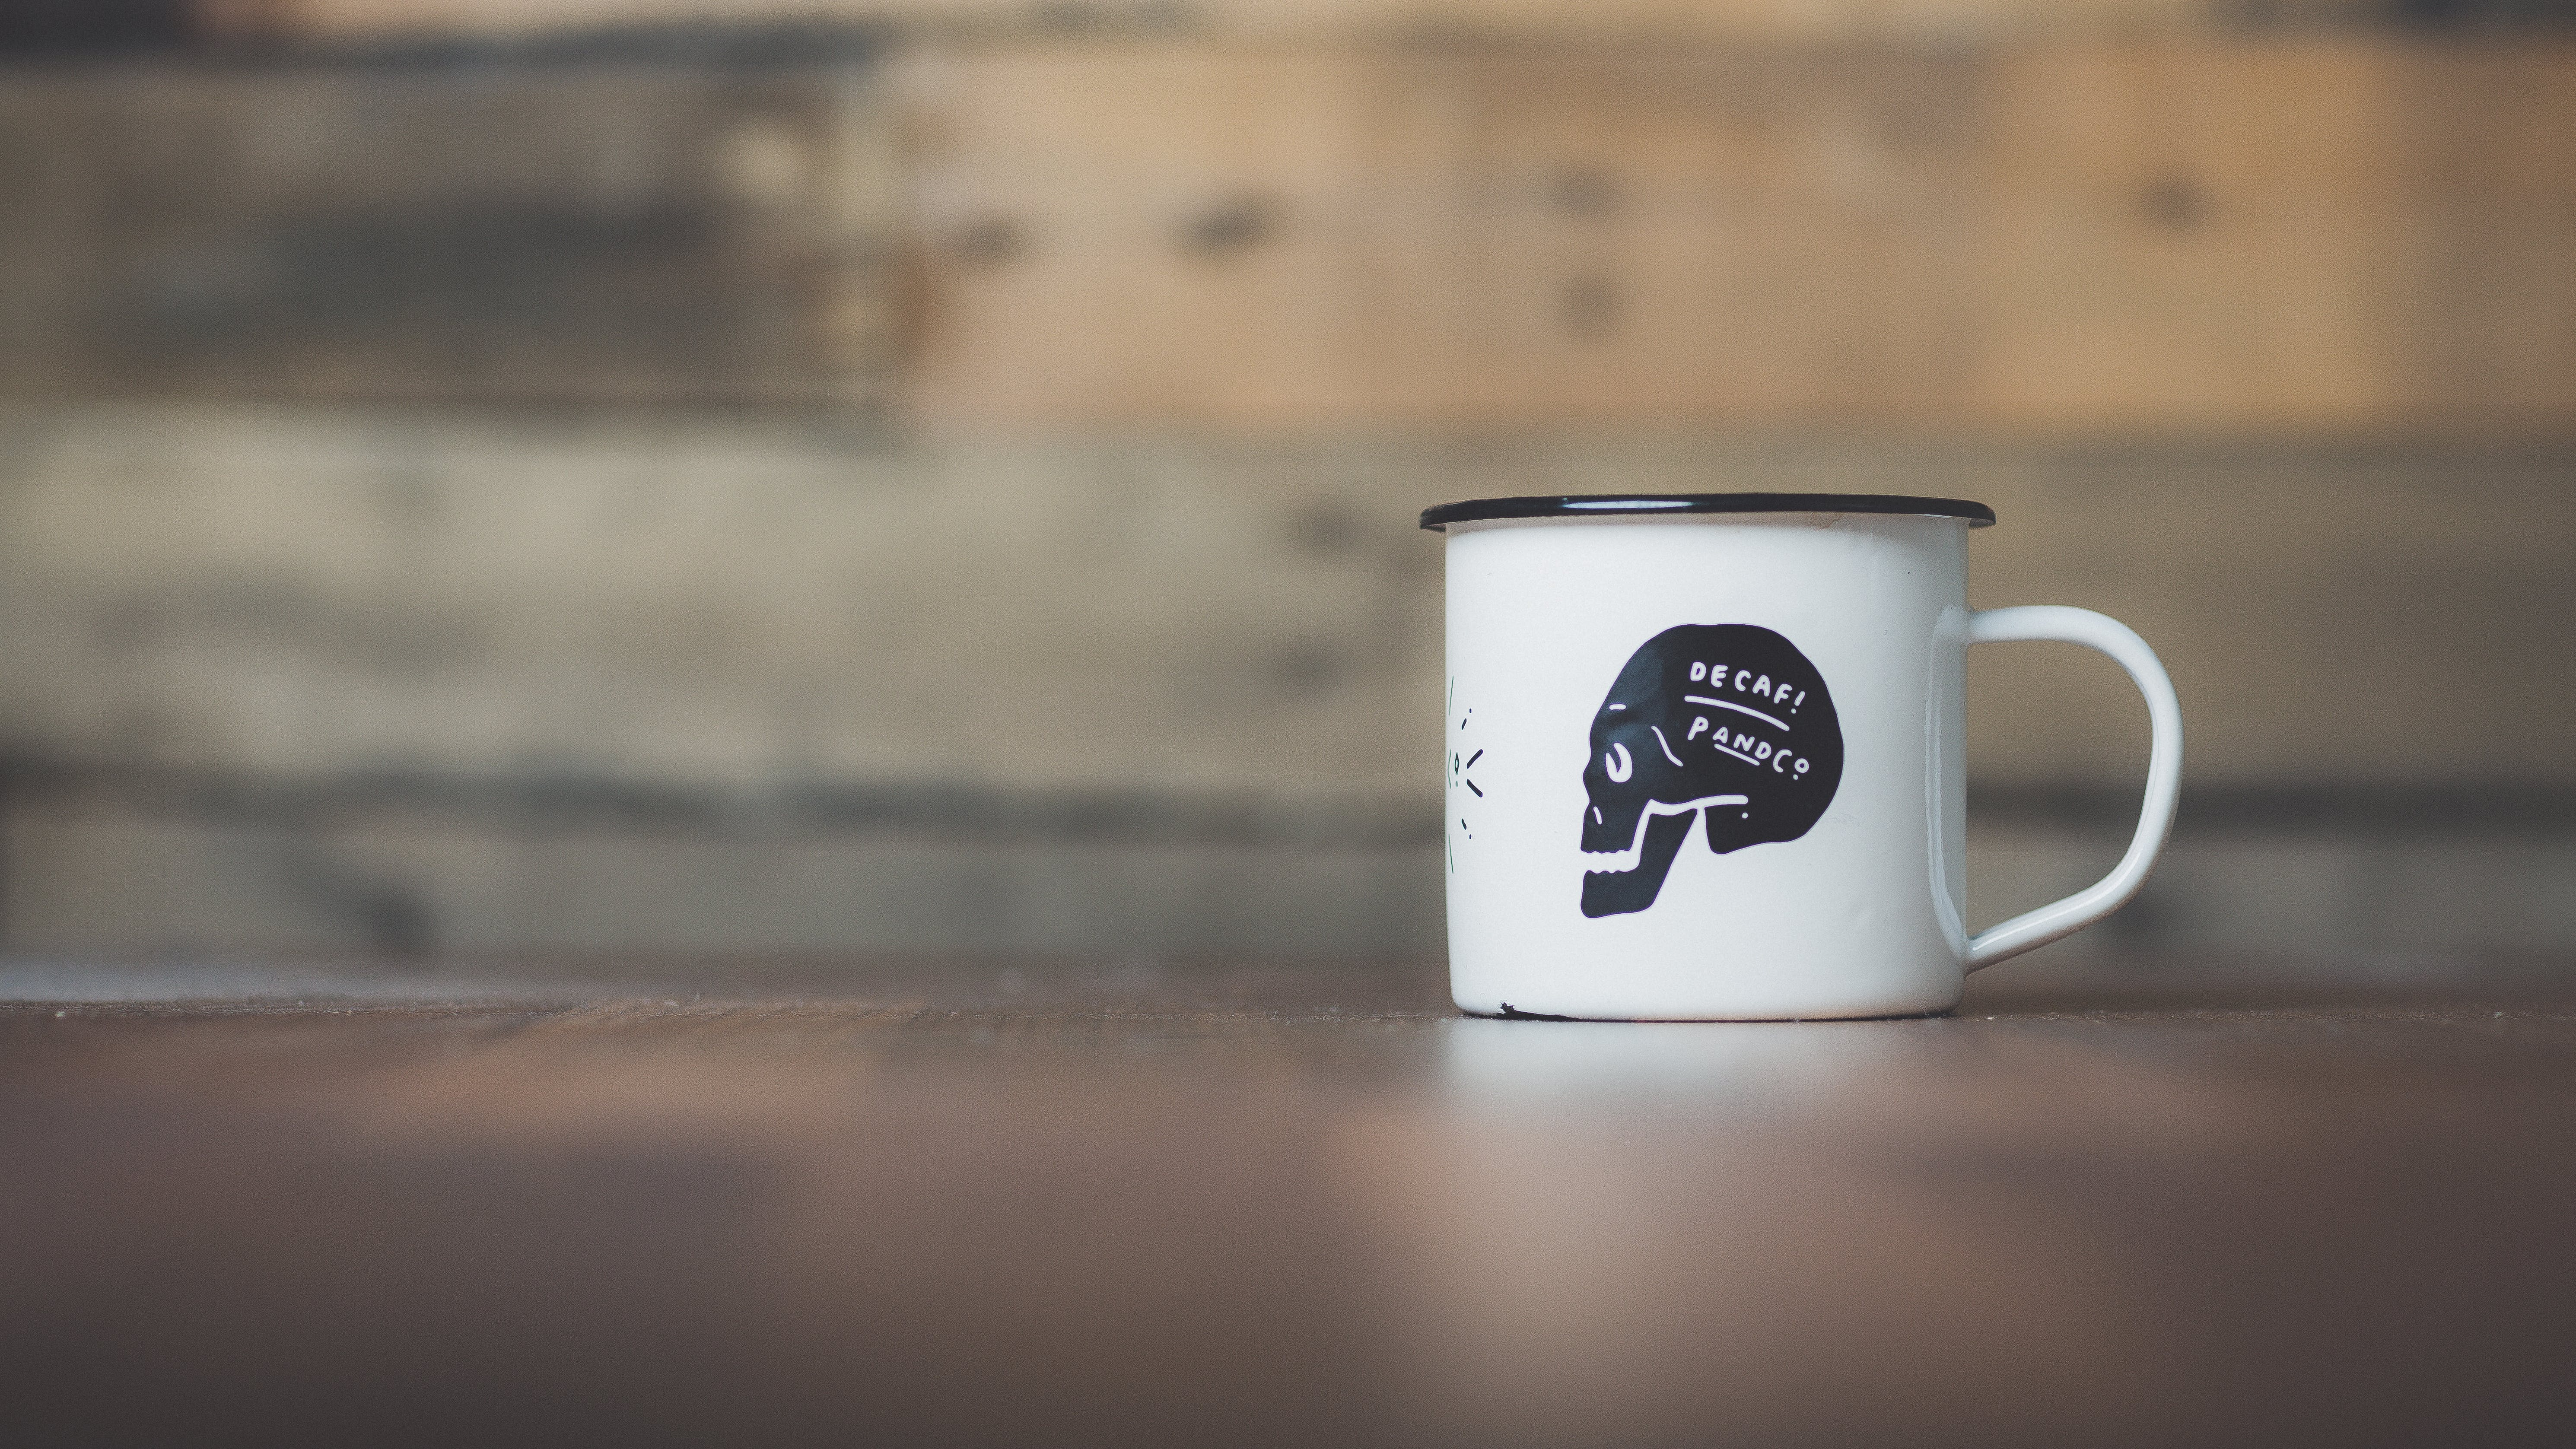 Free stock photo of wood, coffee, cup, mug